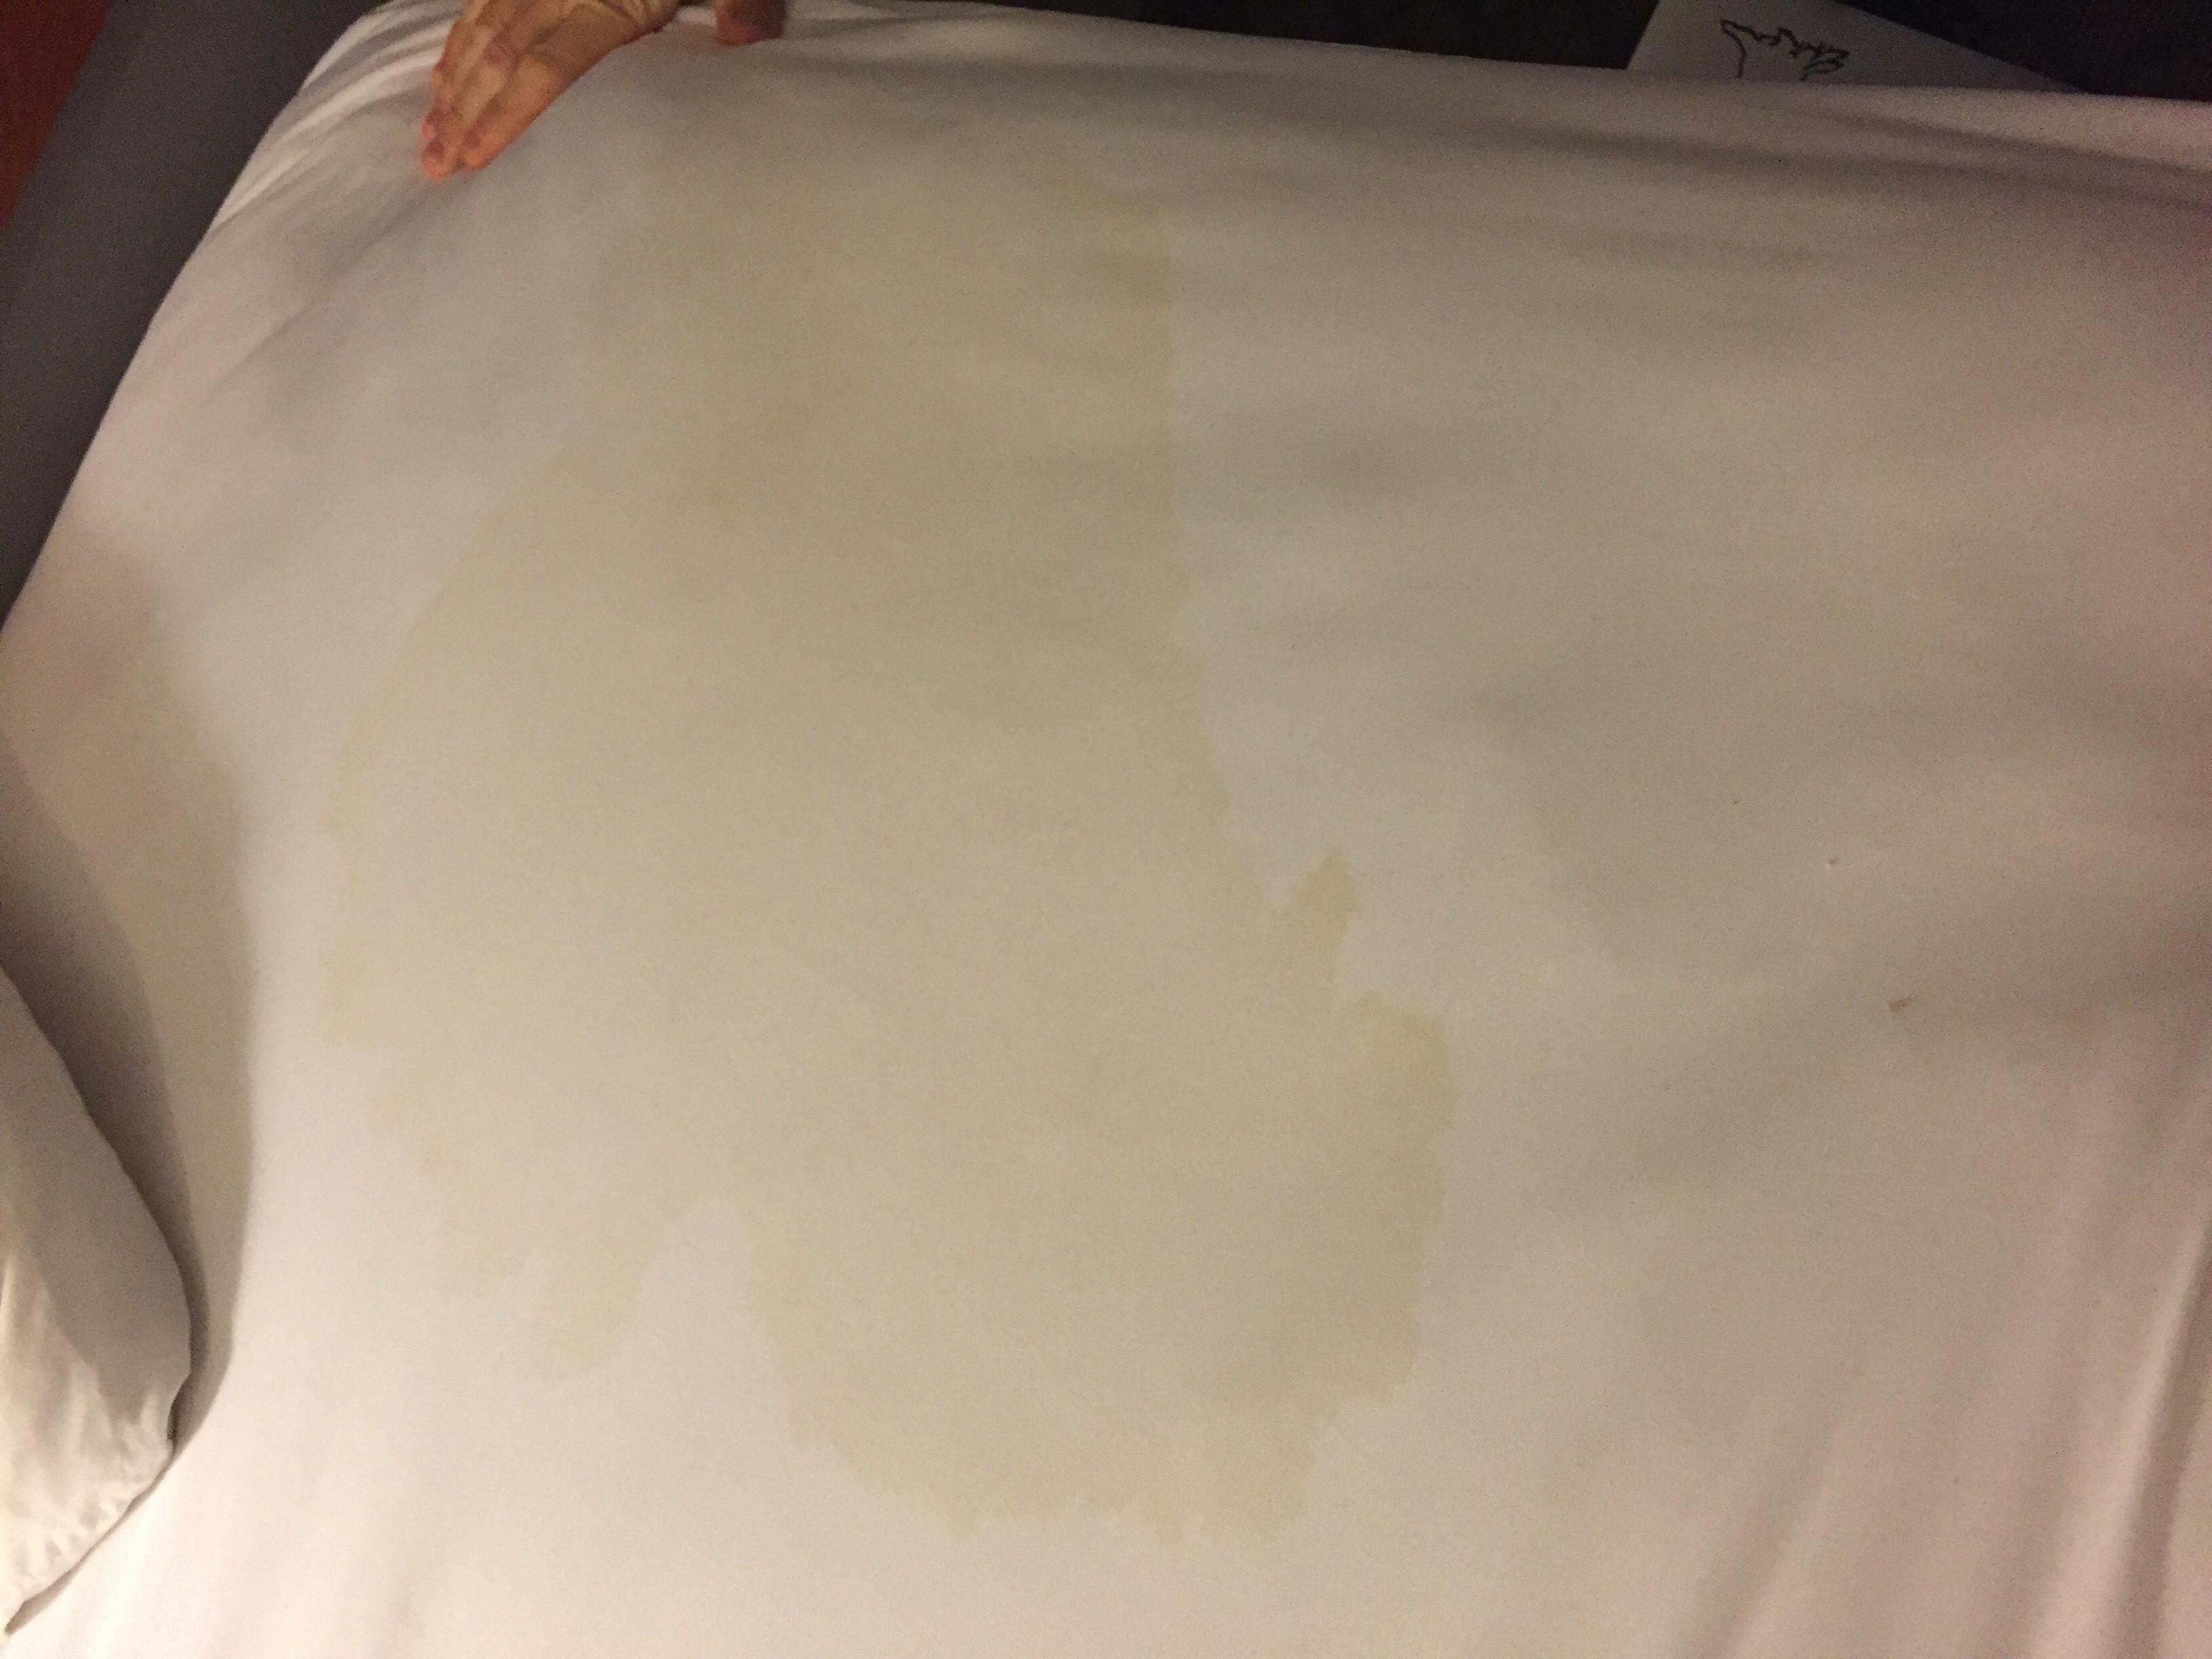 urine stained sheets upon entering